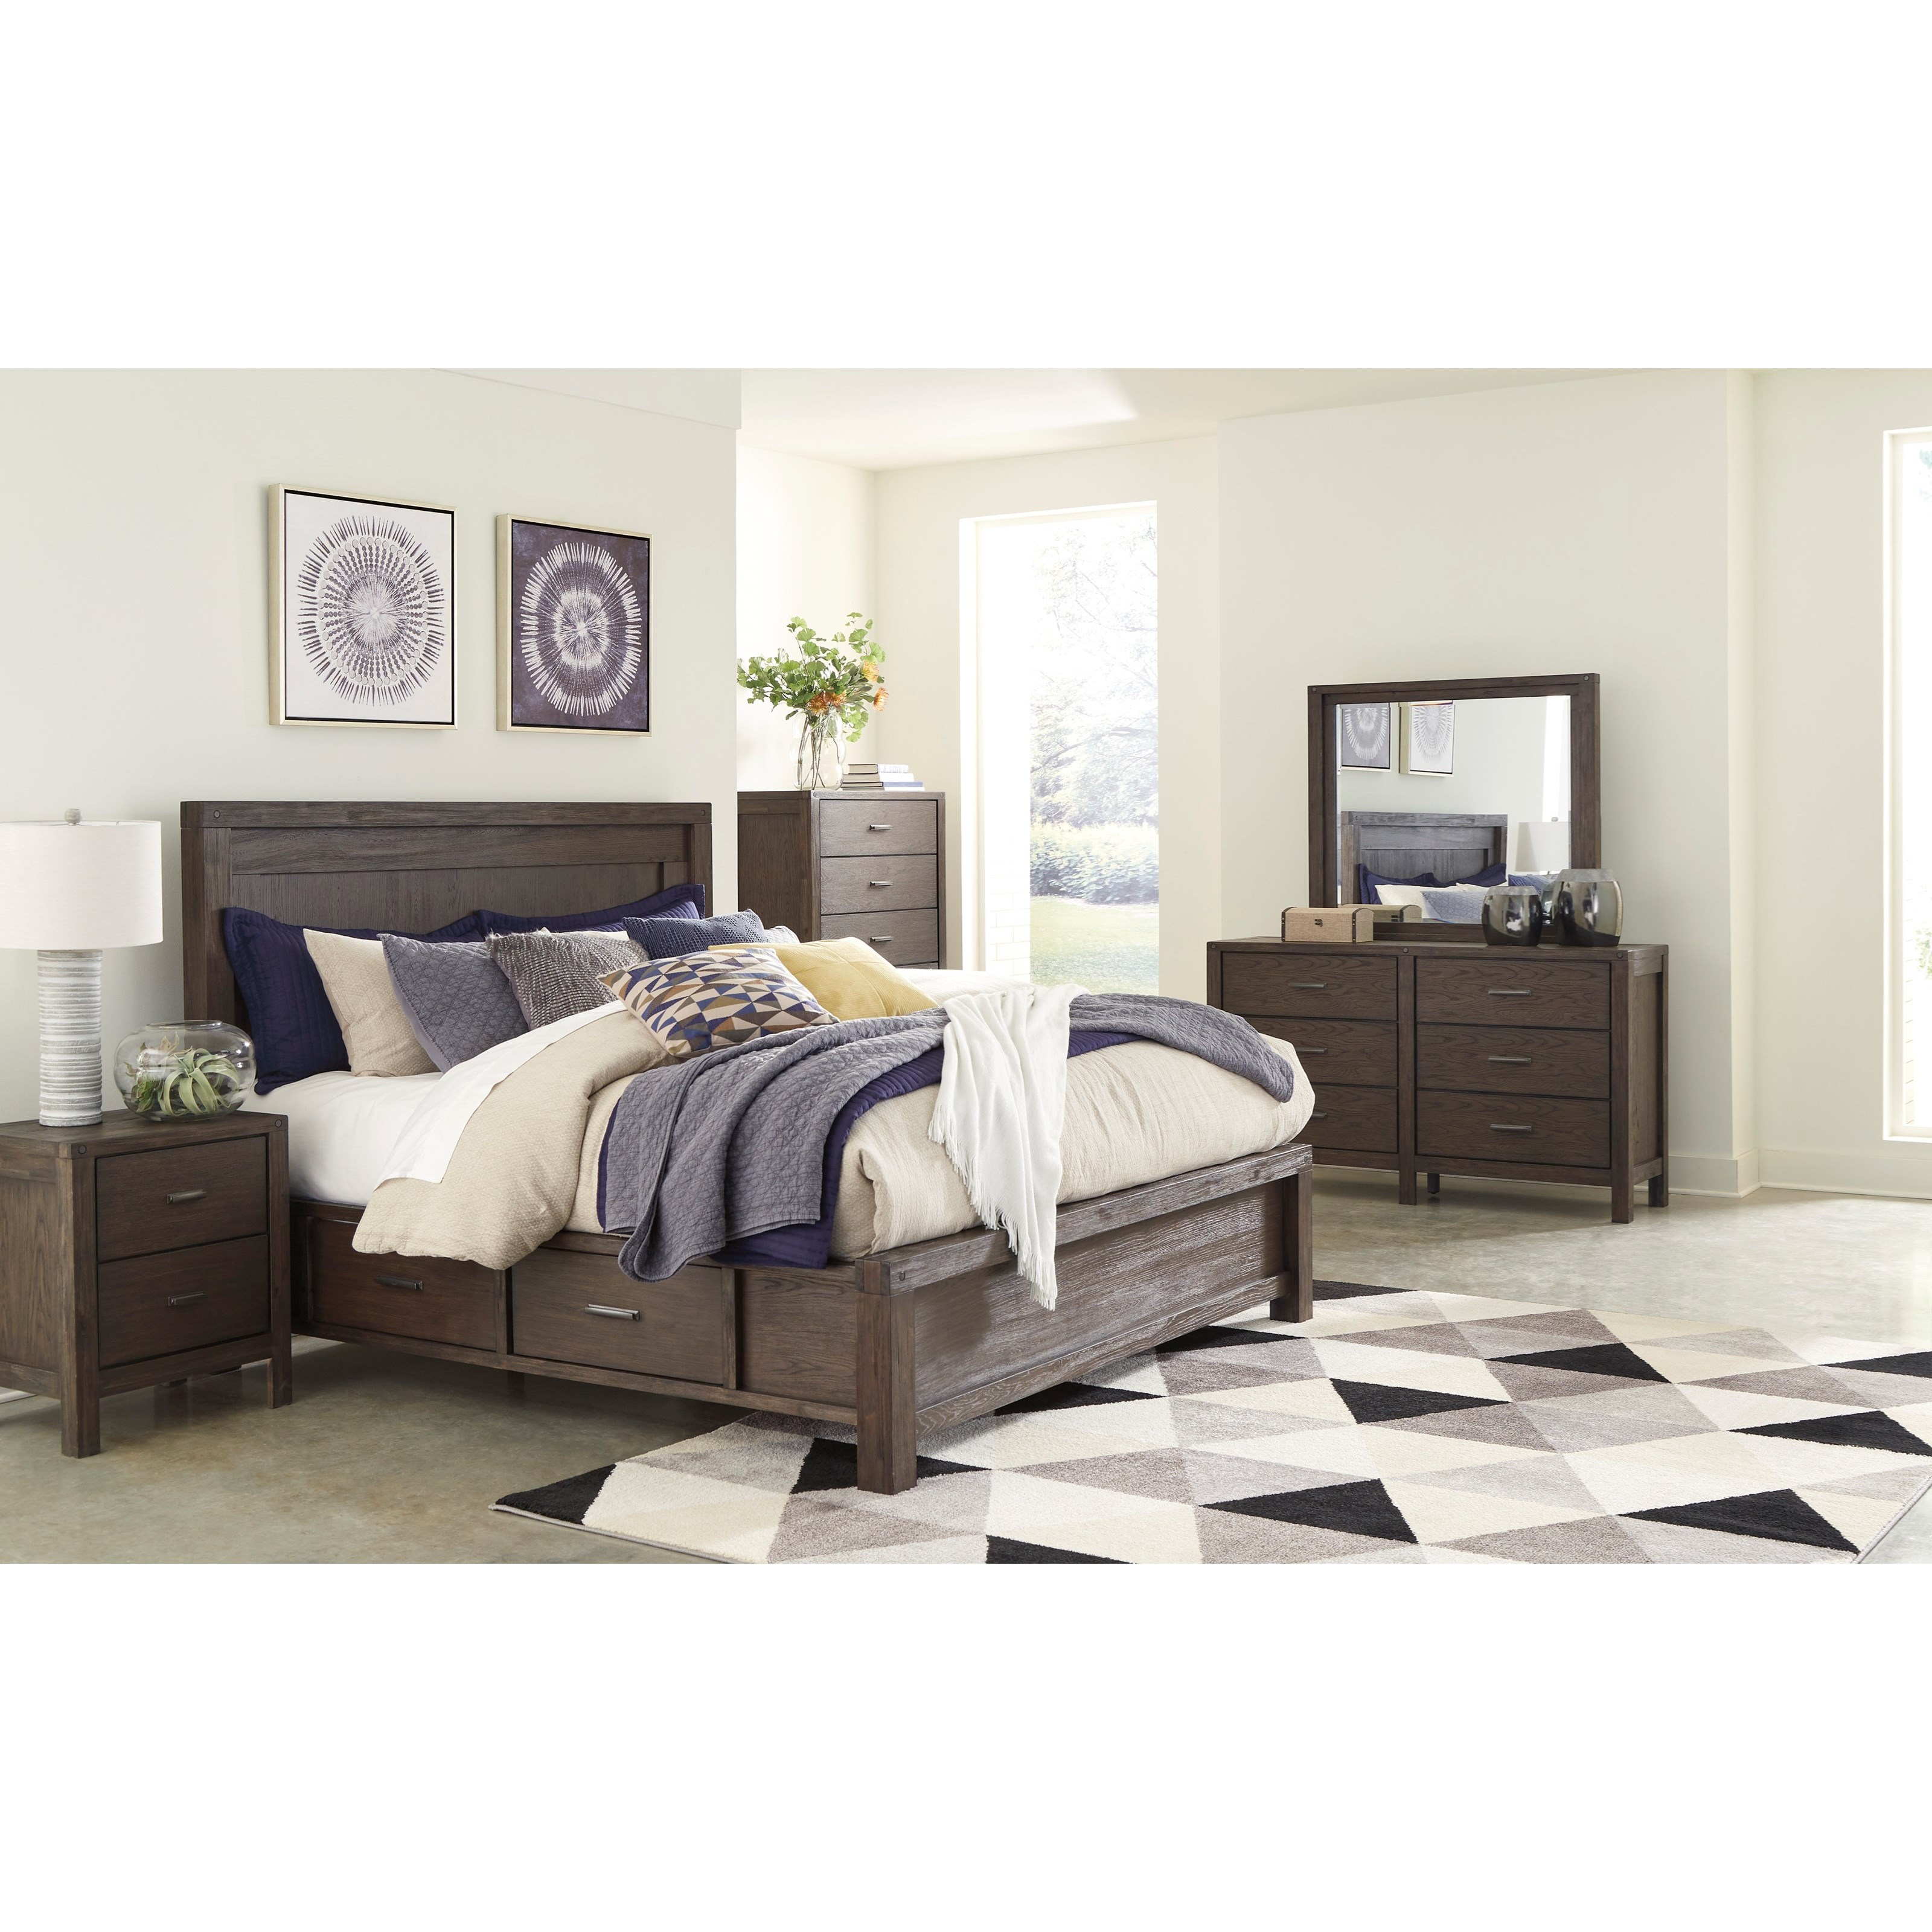 Dellbeck Queen Bedroom Group by Millennium at Value City Furniture